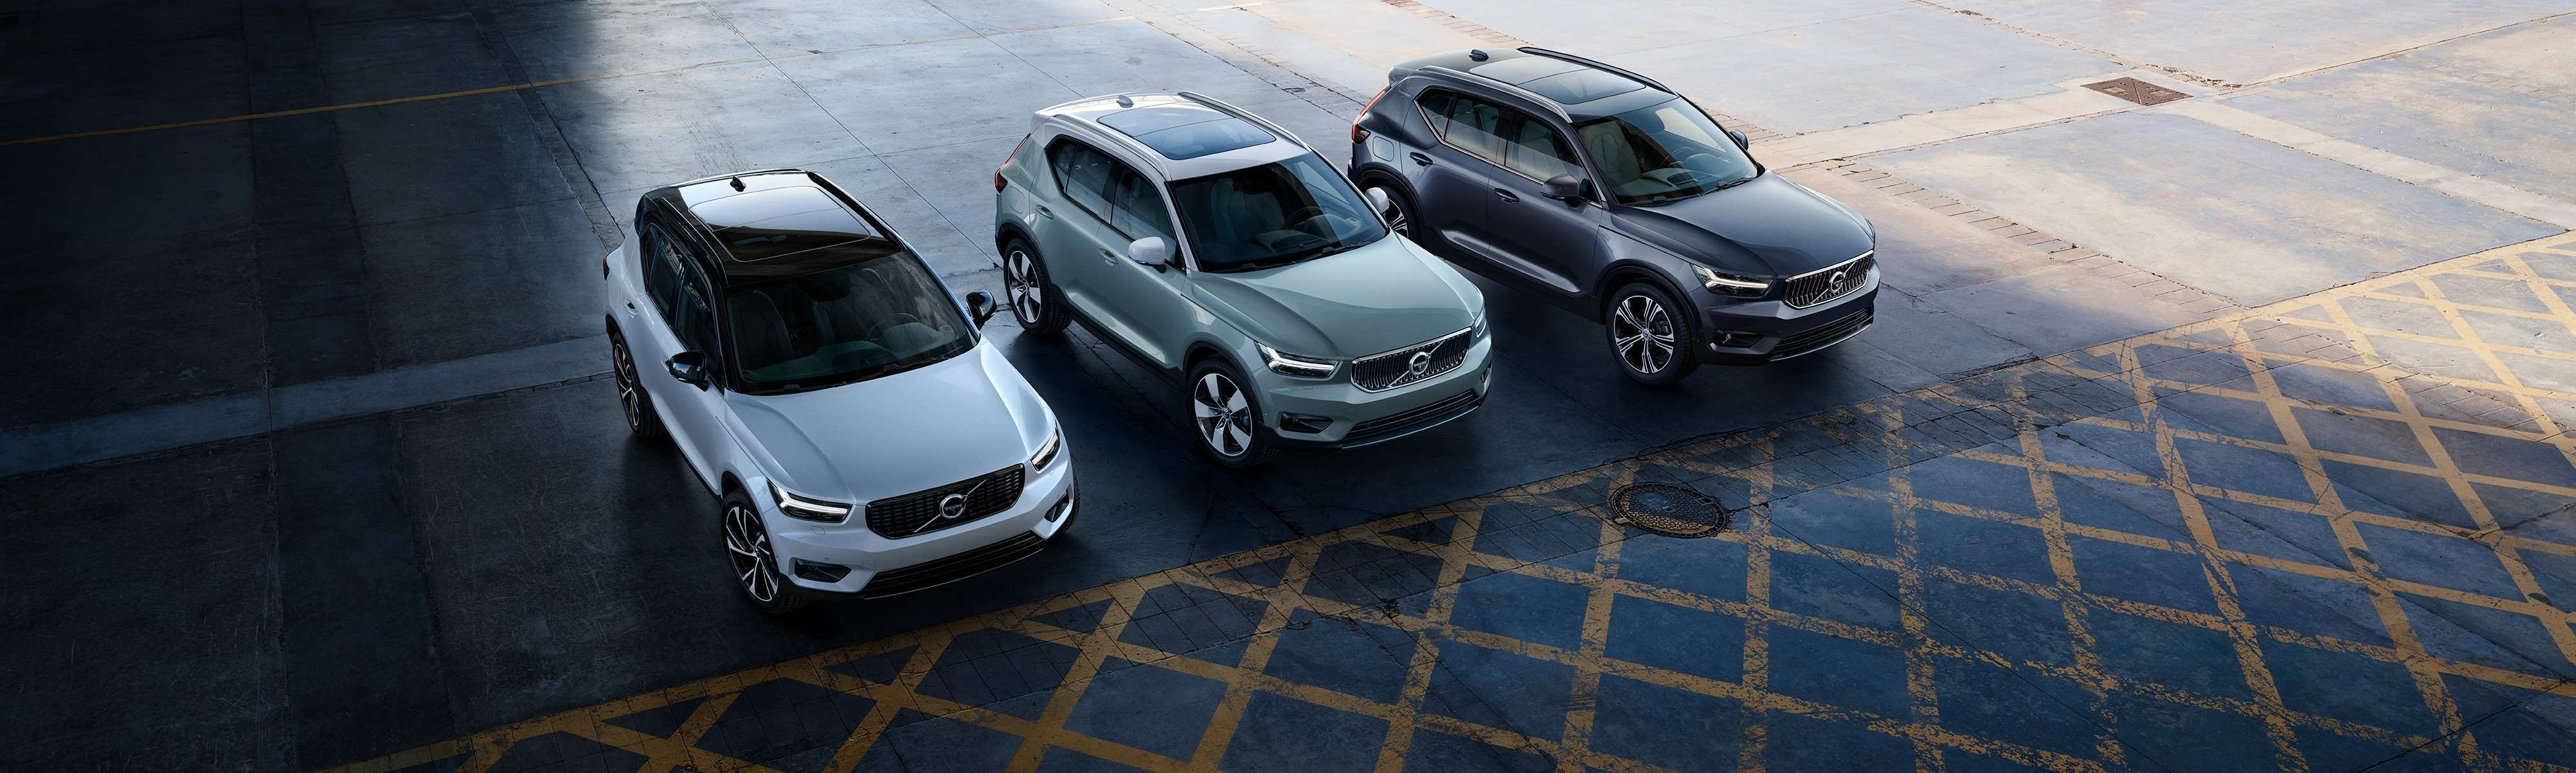 72 Best Review Best Volvo Cars 2019 Models Specs Pricing by Best Volvo Cars 2019 Models Specs